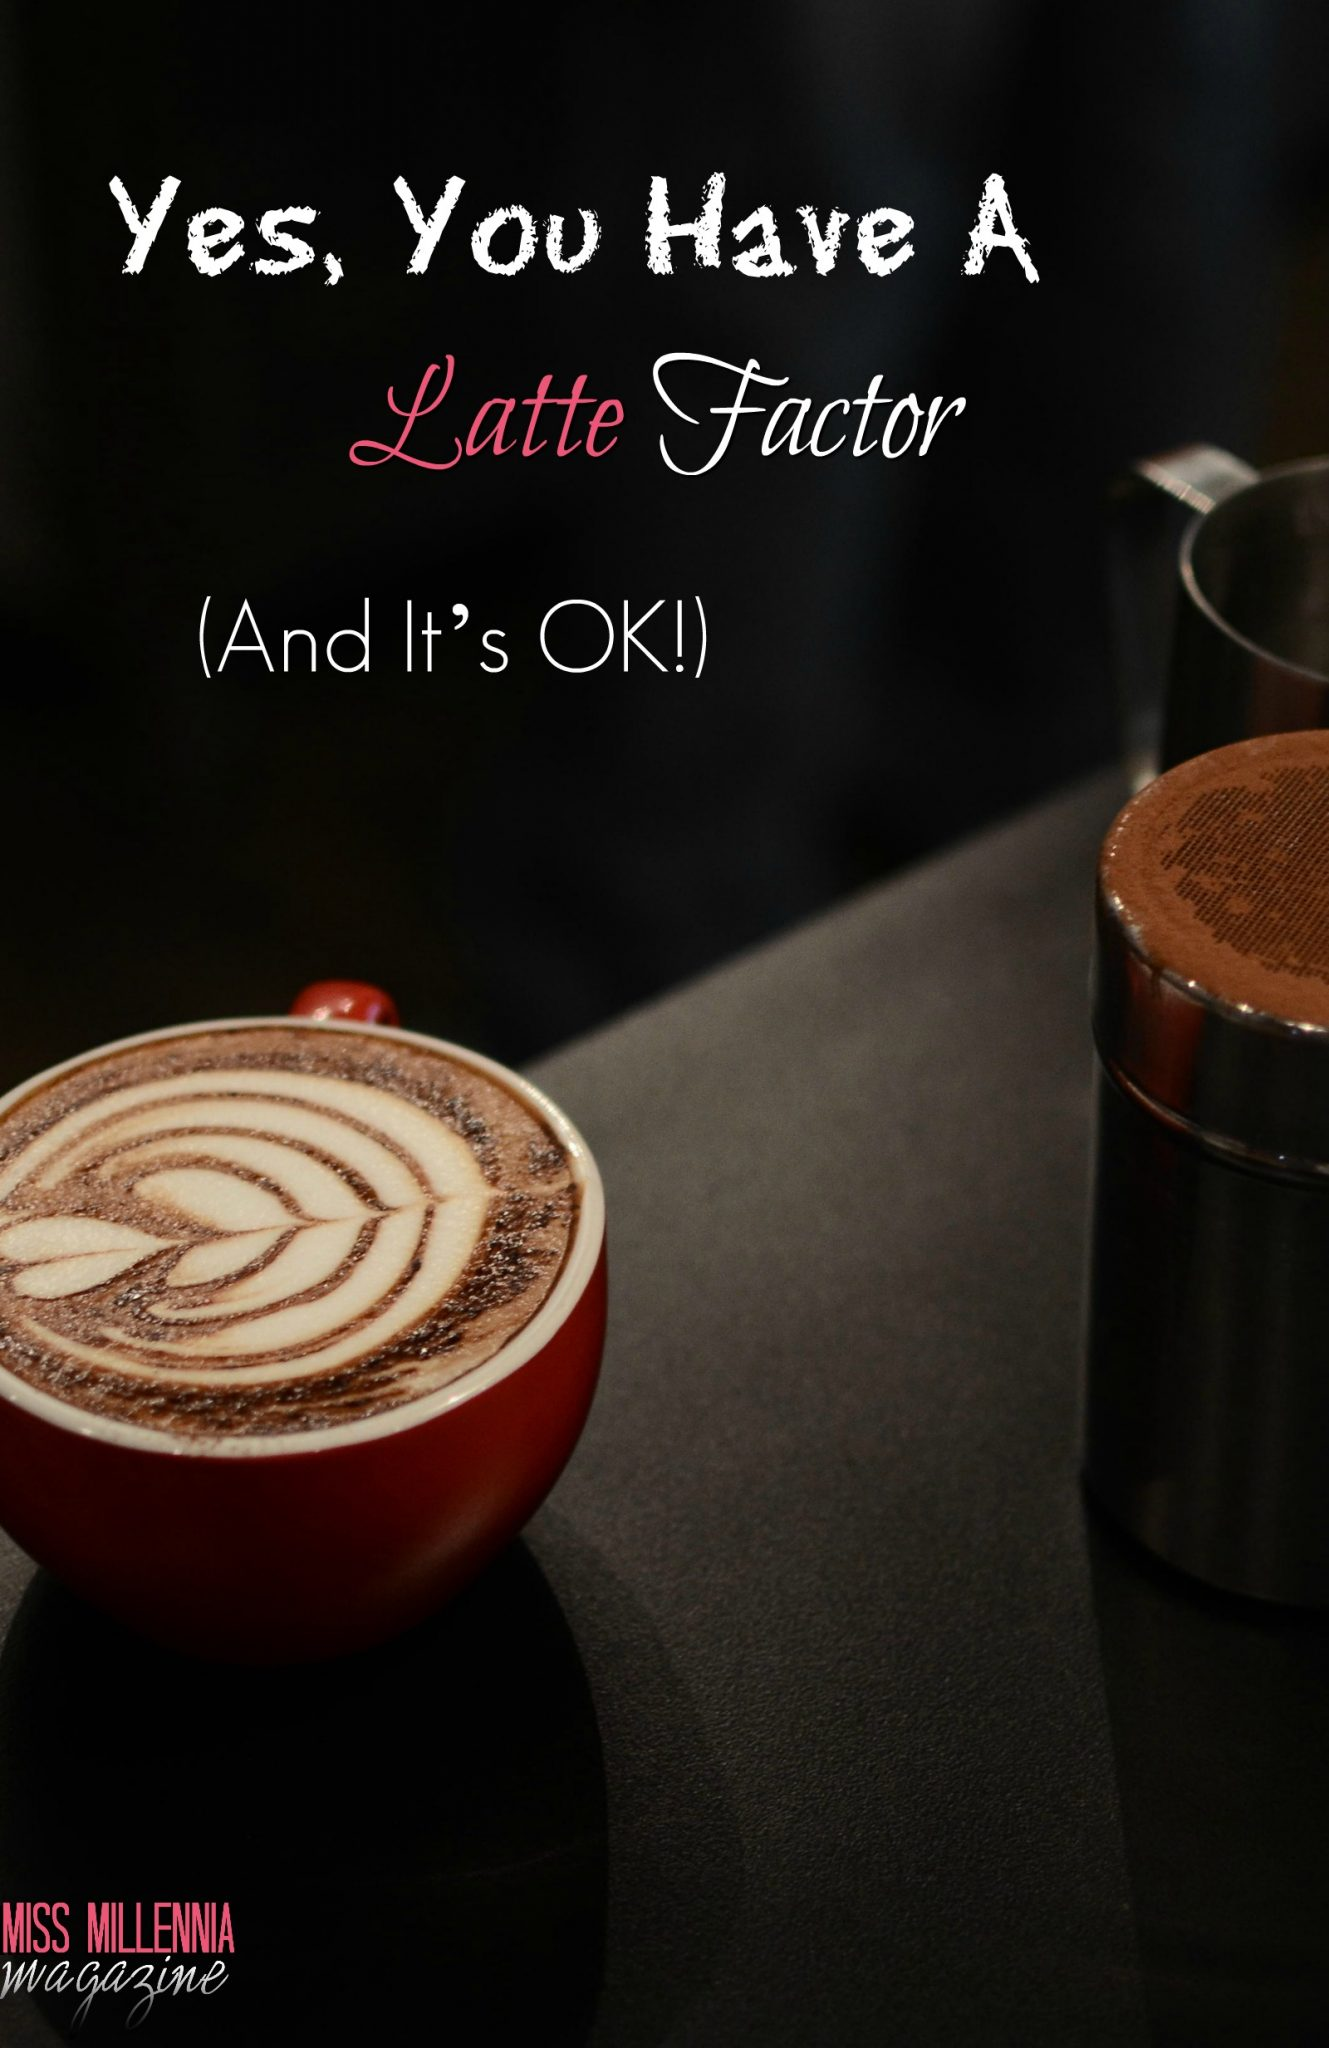 Yes, You Have A Latte Factor (And It's OK!)